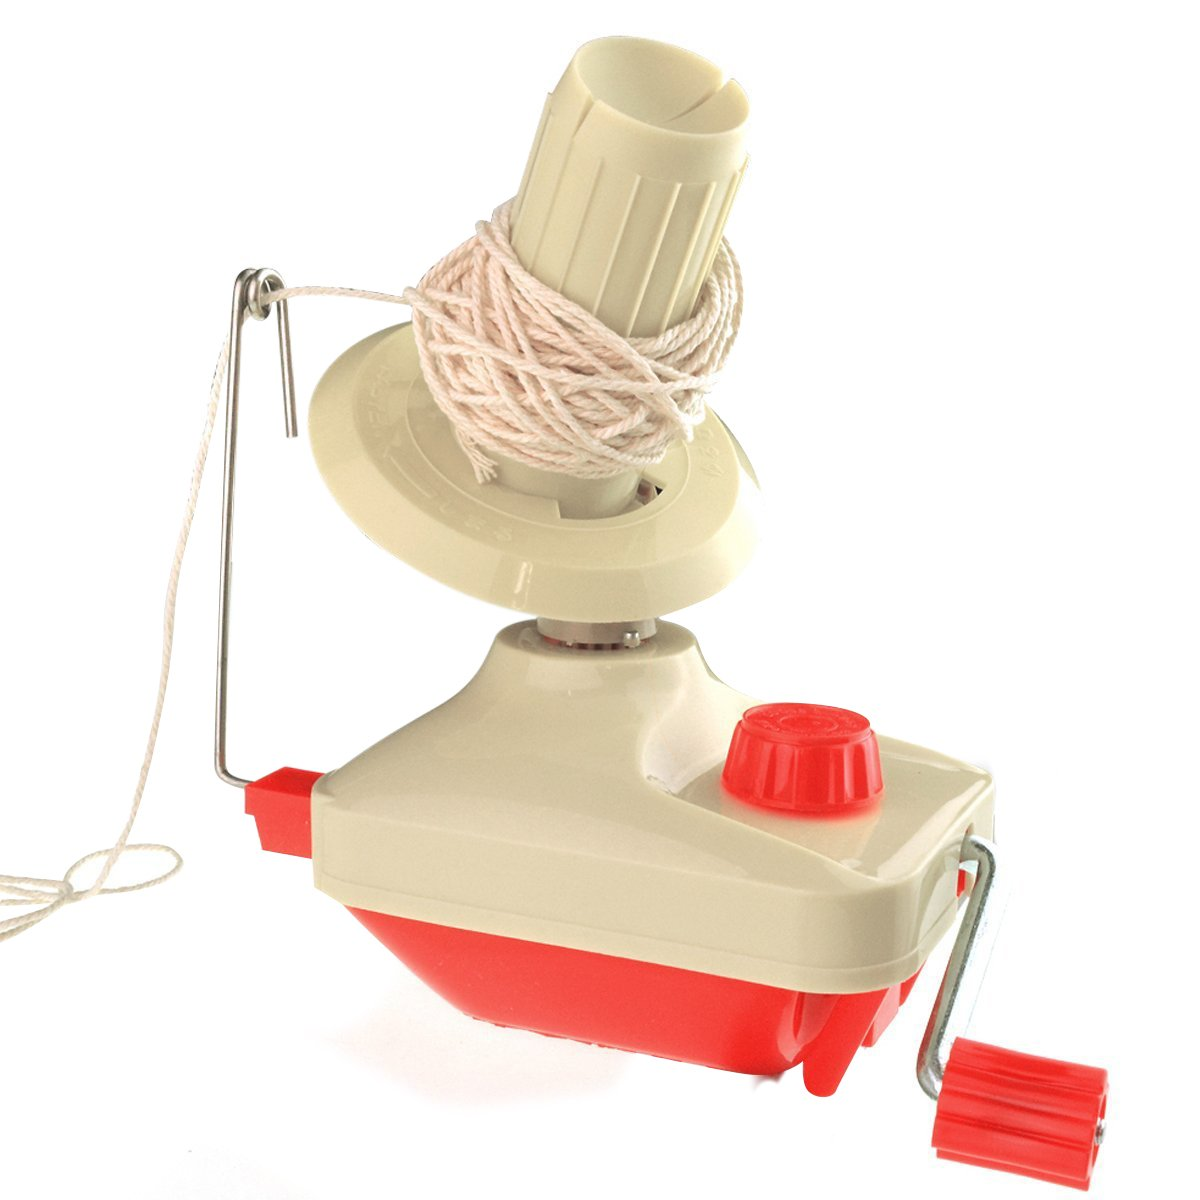 Marrywindix Bobbin Winder Yarn Winder Table Clasp, Hand Operated Manual Wool Winder Holder for Swift Yarn Fiber String Ball 4336905471